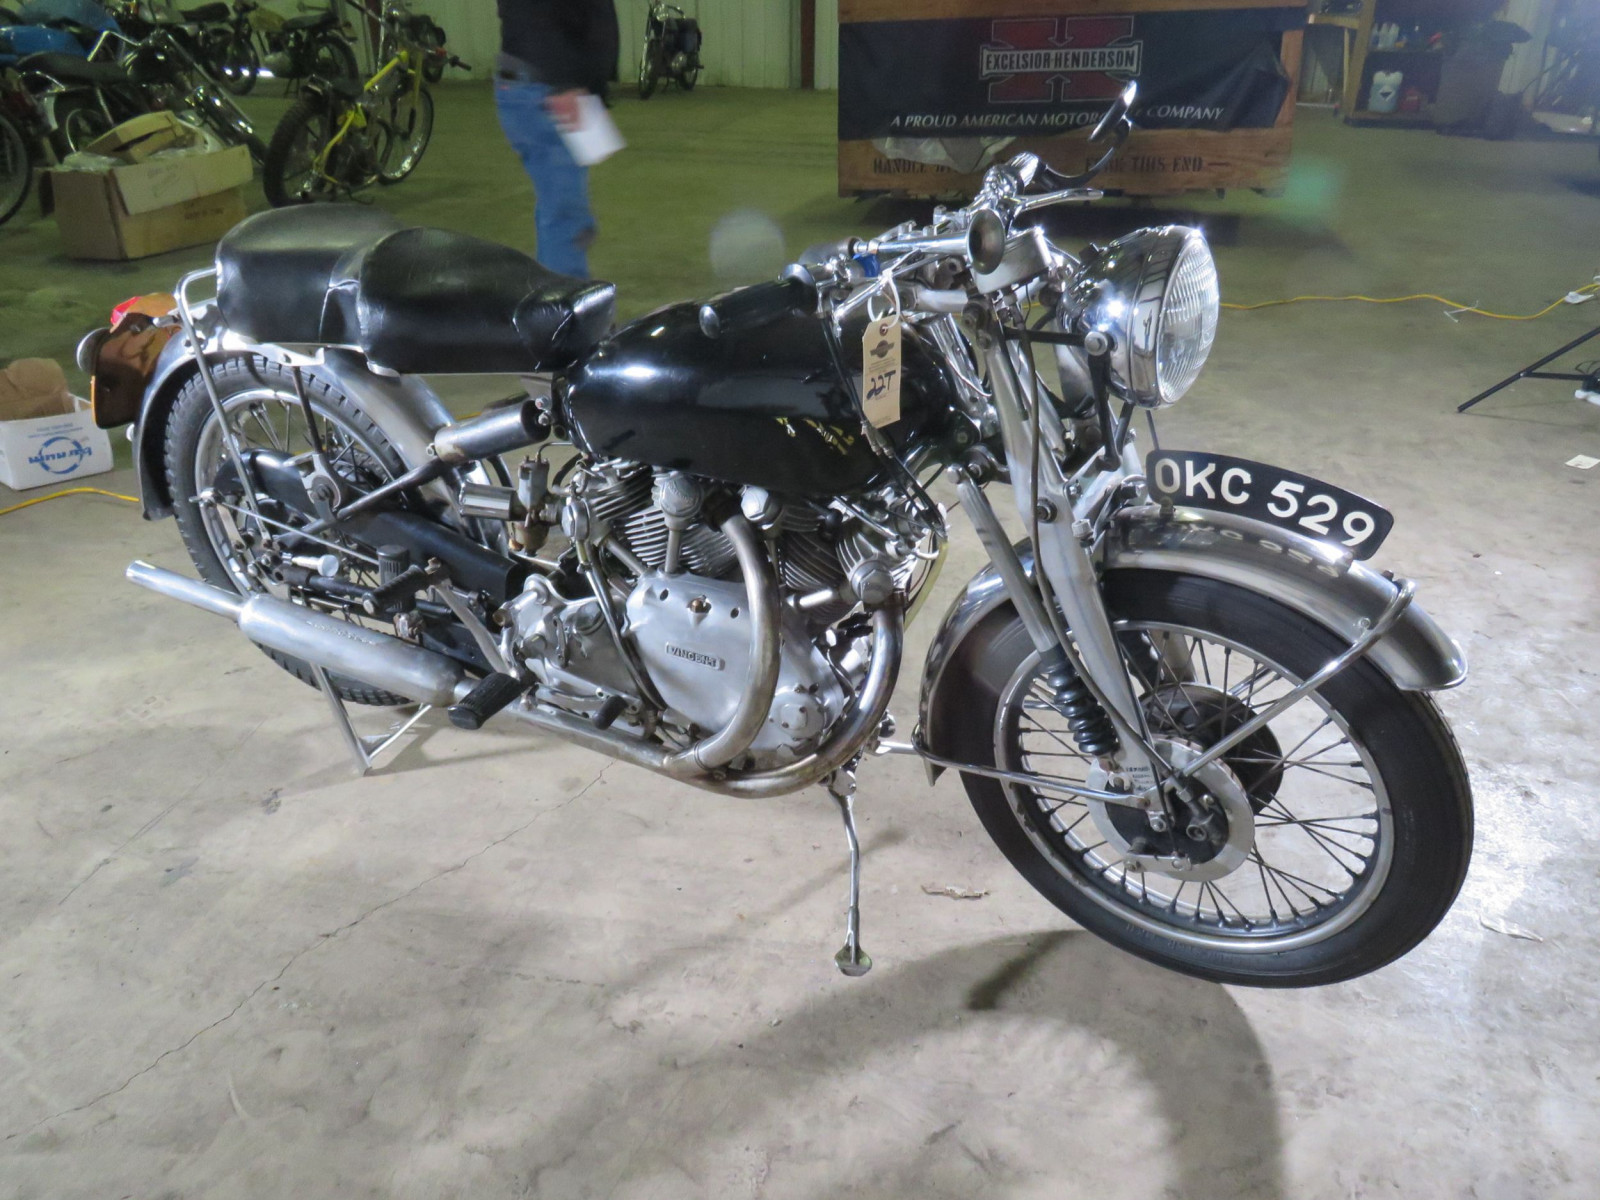 1952 Rare Vincent Motorcycle - Image 2